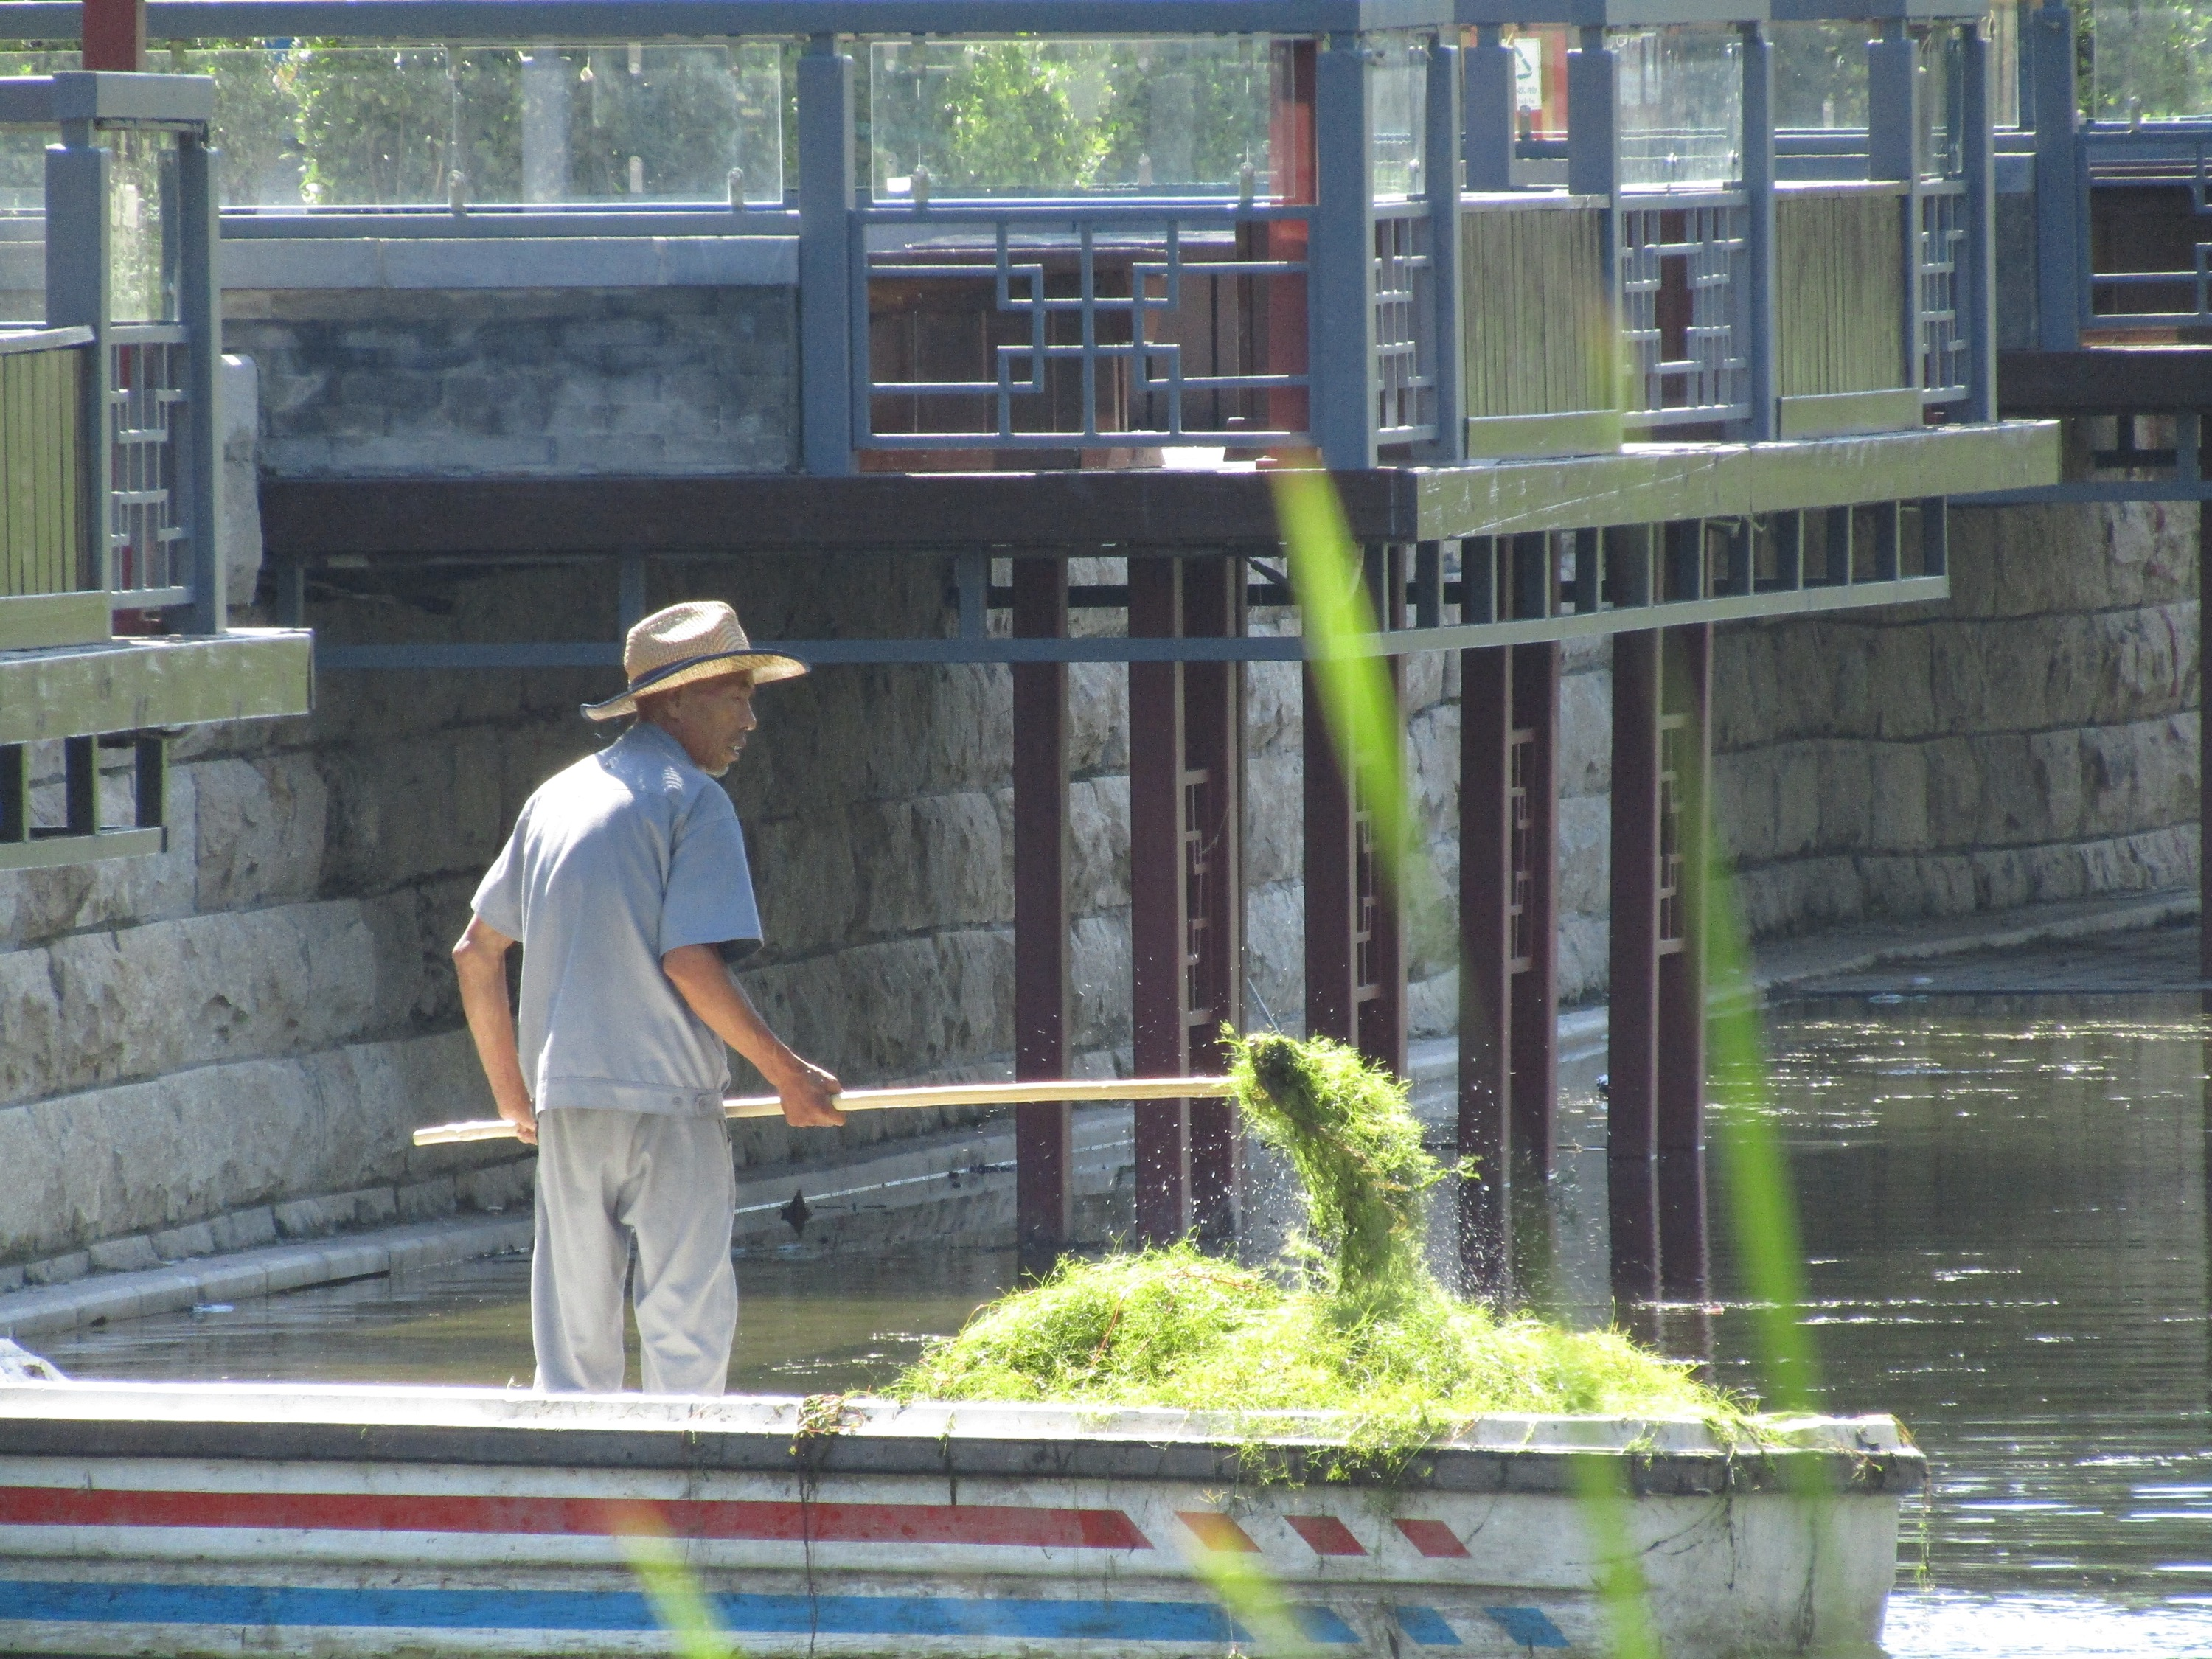 This fisherman was collecting seaweed from a small river near Maoer Hutong.